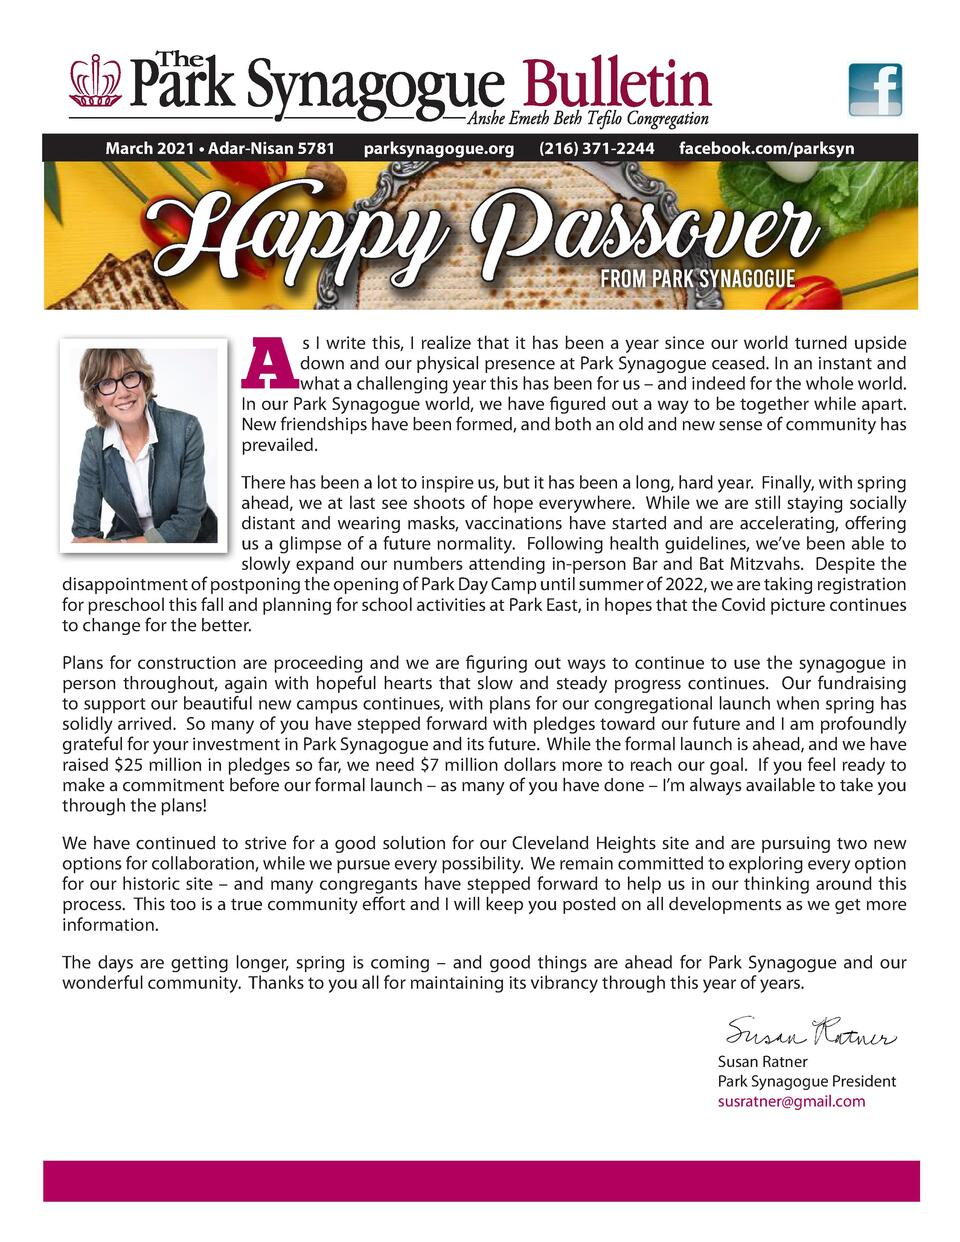 March 2021     Adar-Nisan 5781  parksynagogue.org   216  371-2244  facebook.com parksyn  Happy Passover from Park Synagogu...